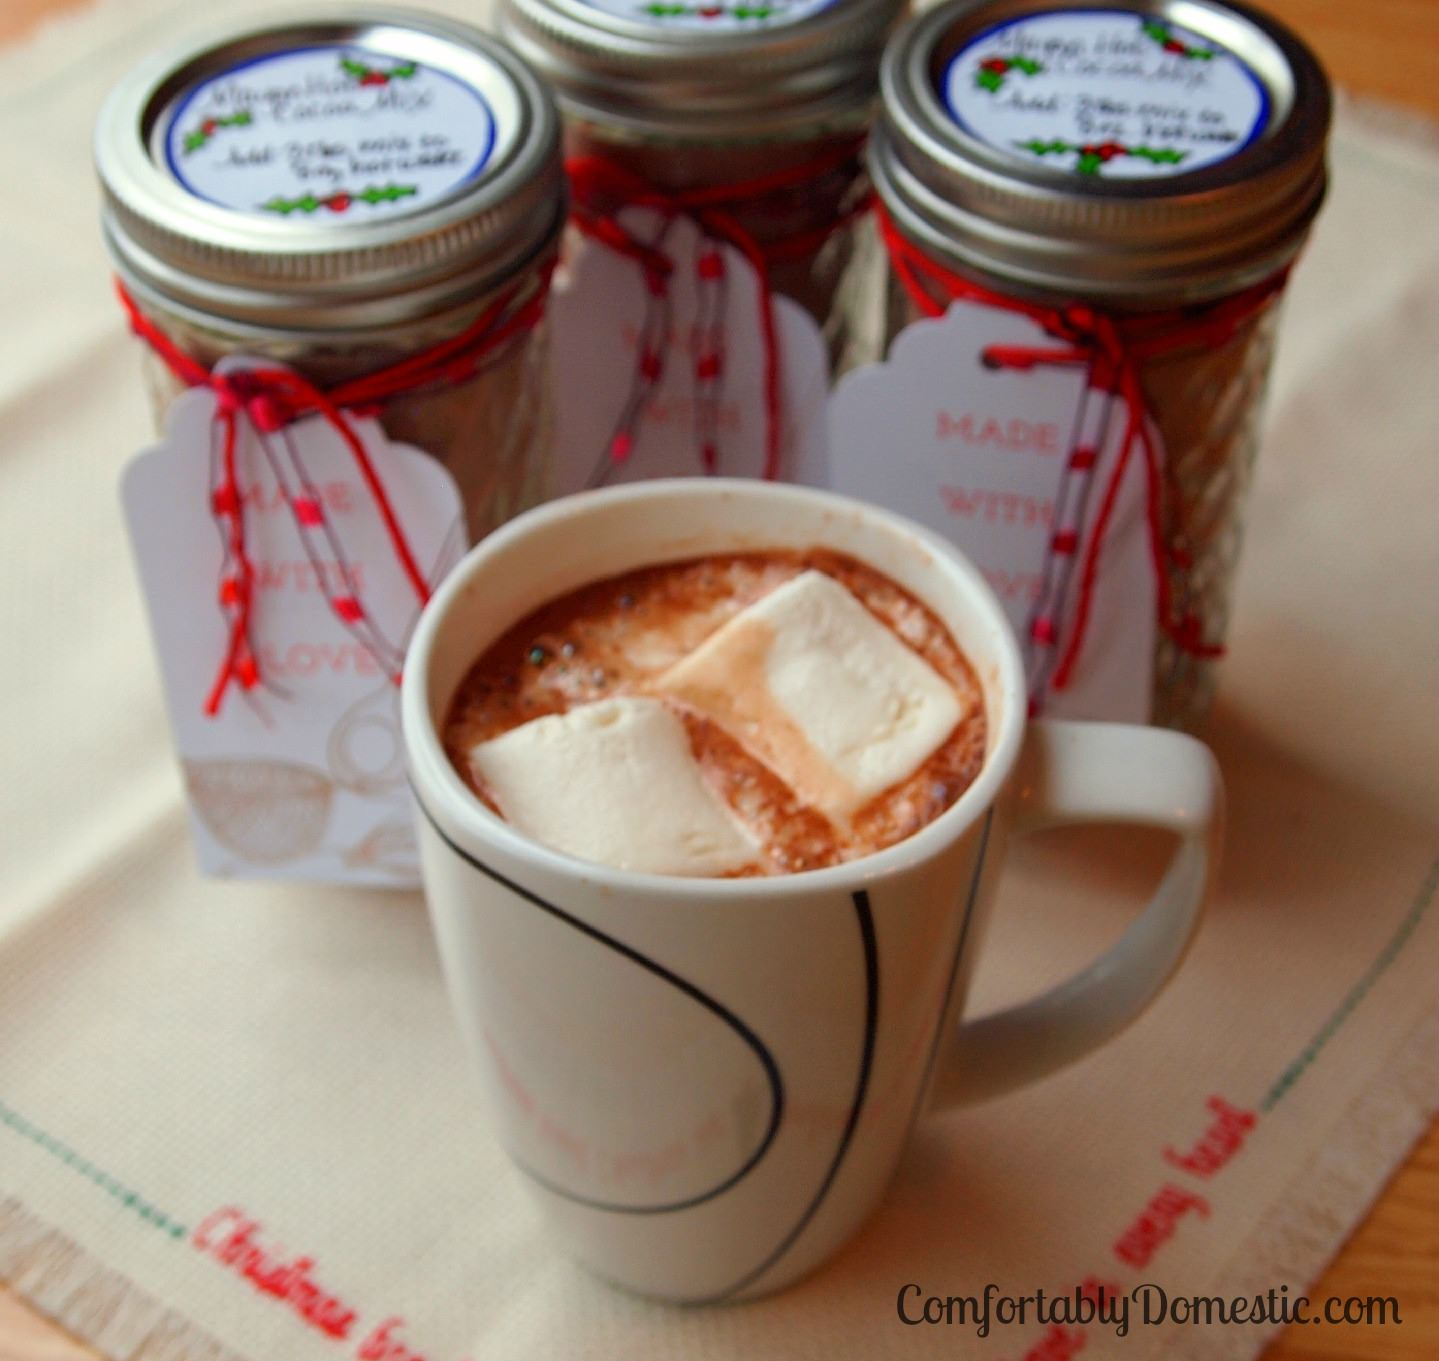 Last Minute Christmas Gifts: Mayan Hot Cocoa Mix